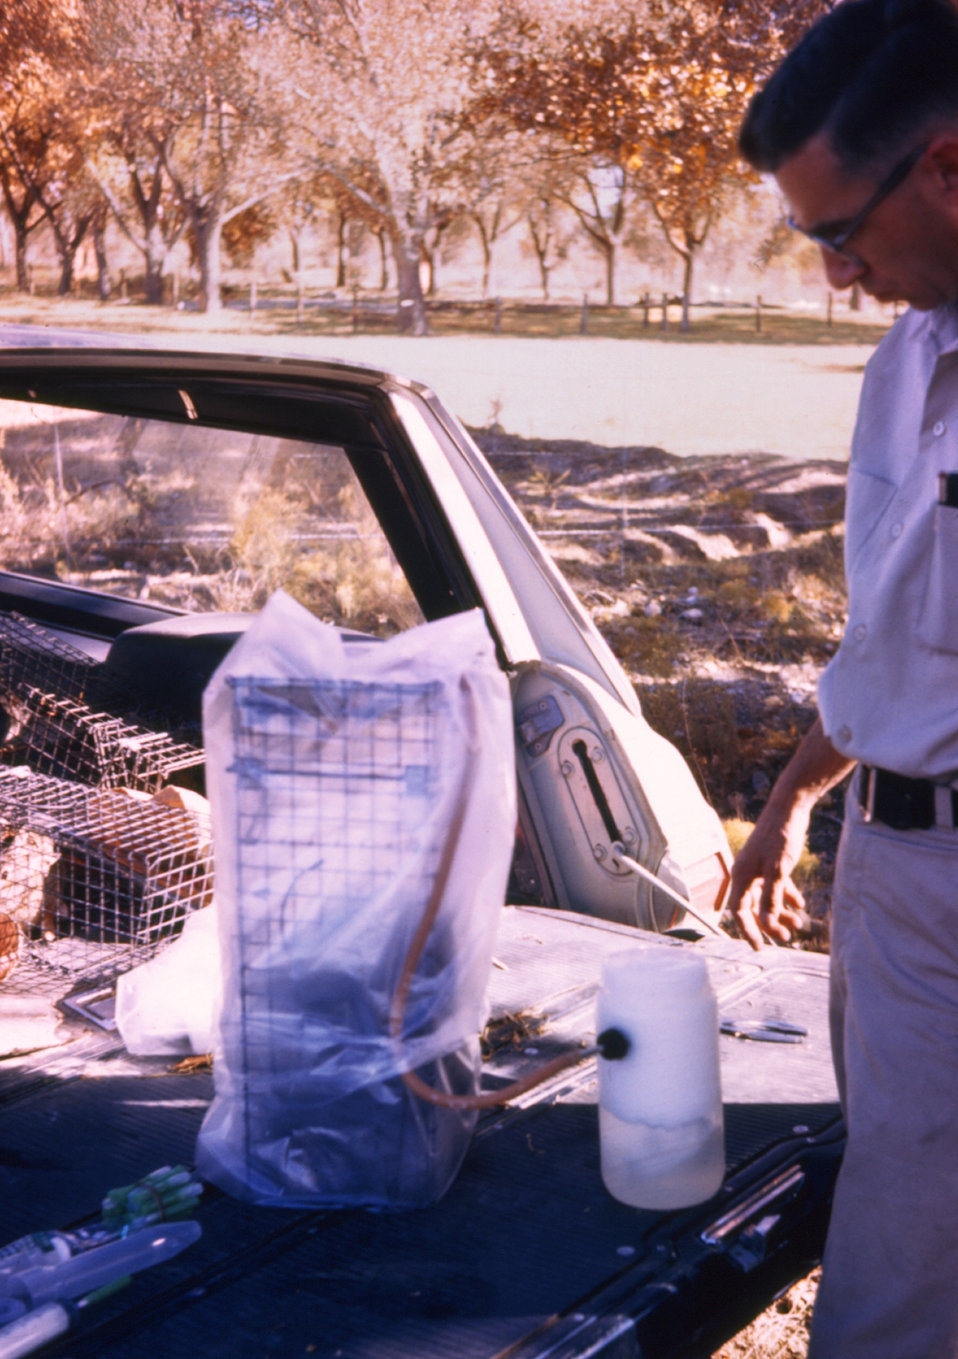 Here a field clinician is adding CO2 to anesthetize an animal during a 1974 arbovirus field study.